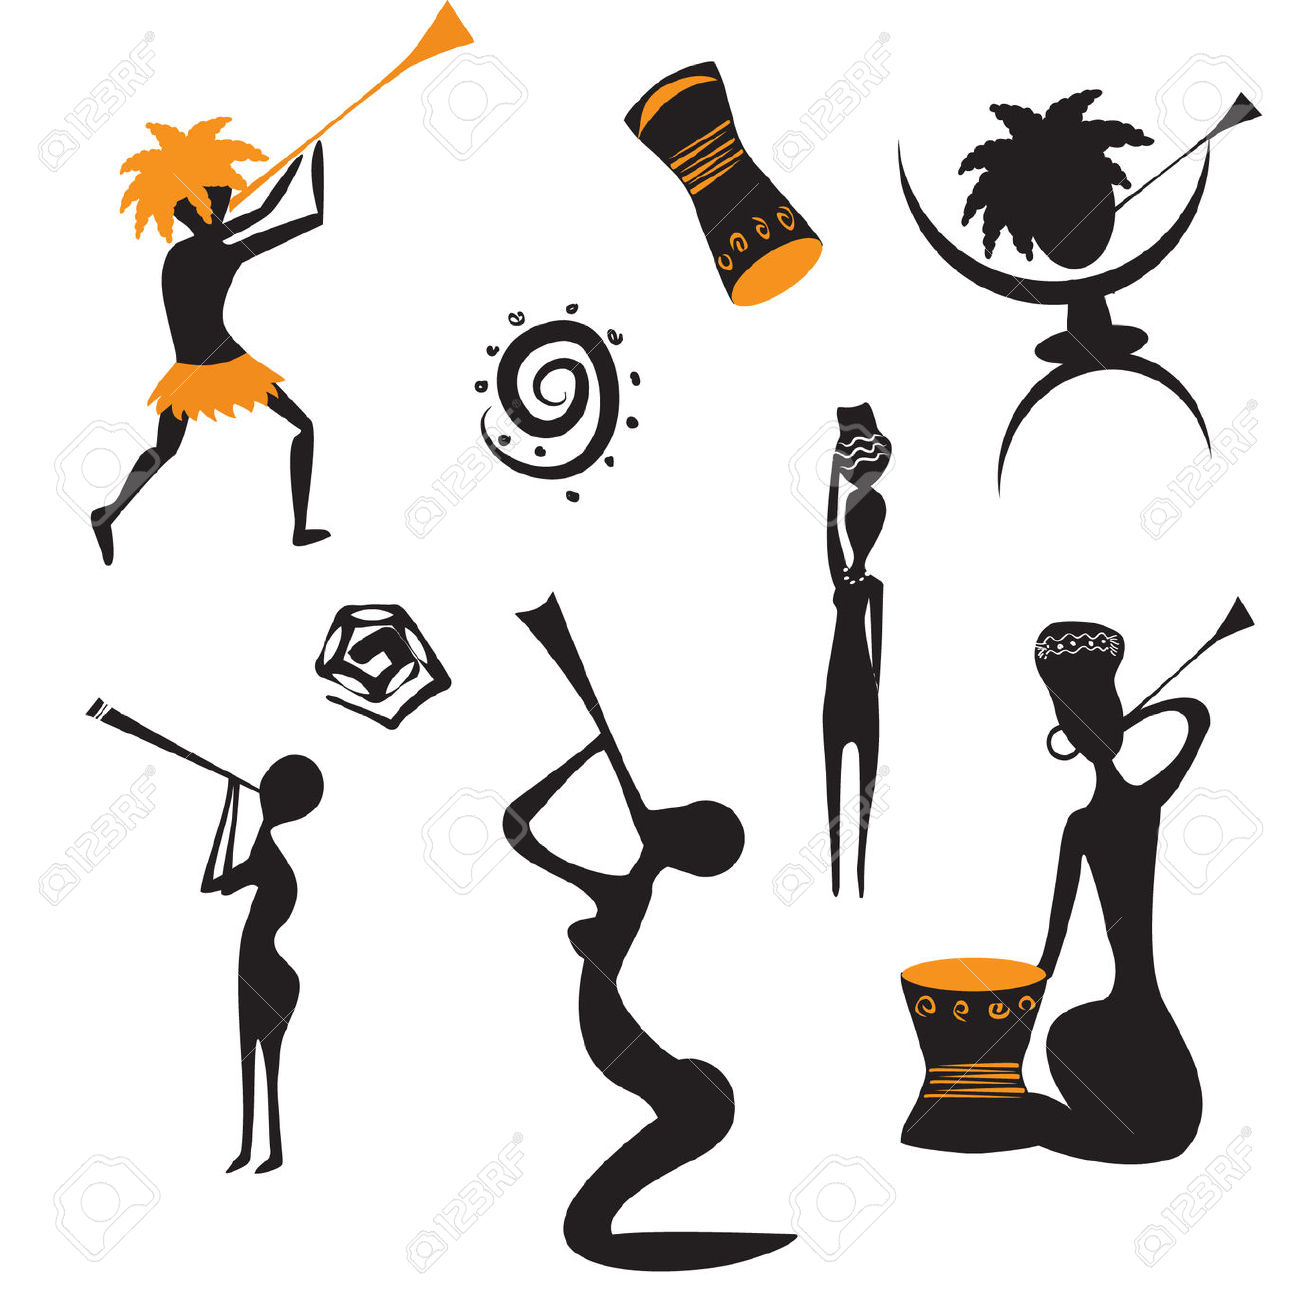 Continent clipart african music Royalty Stock African Cliparts African